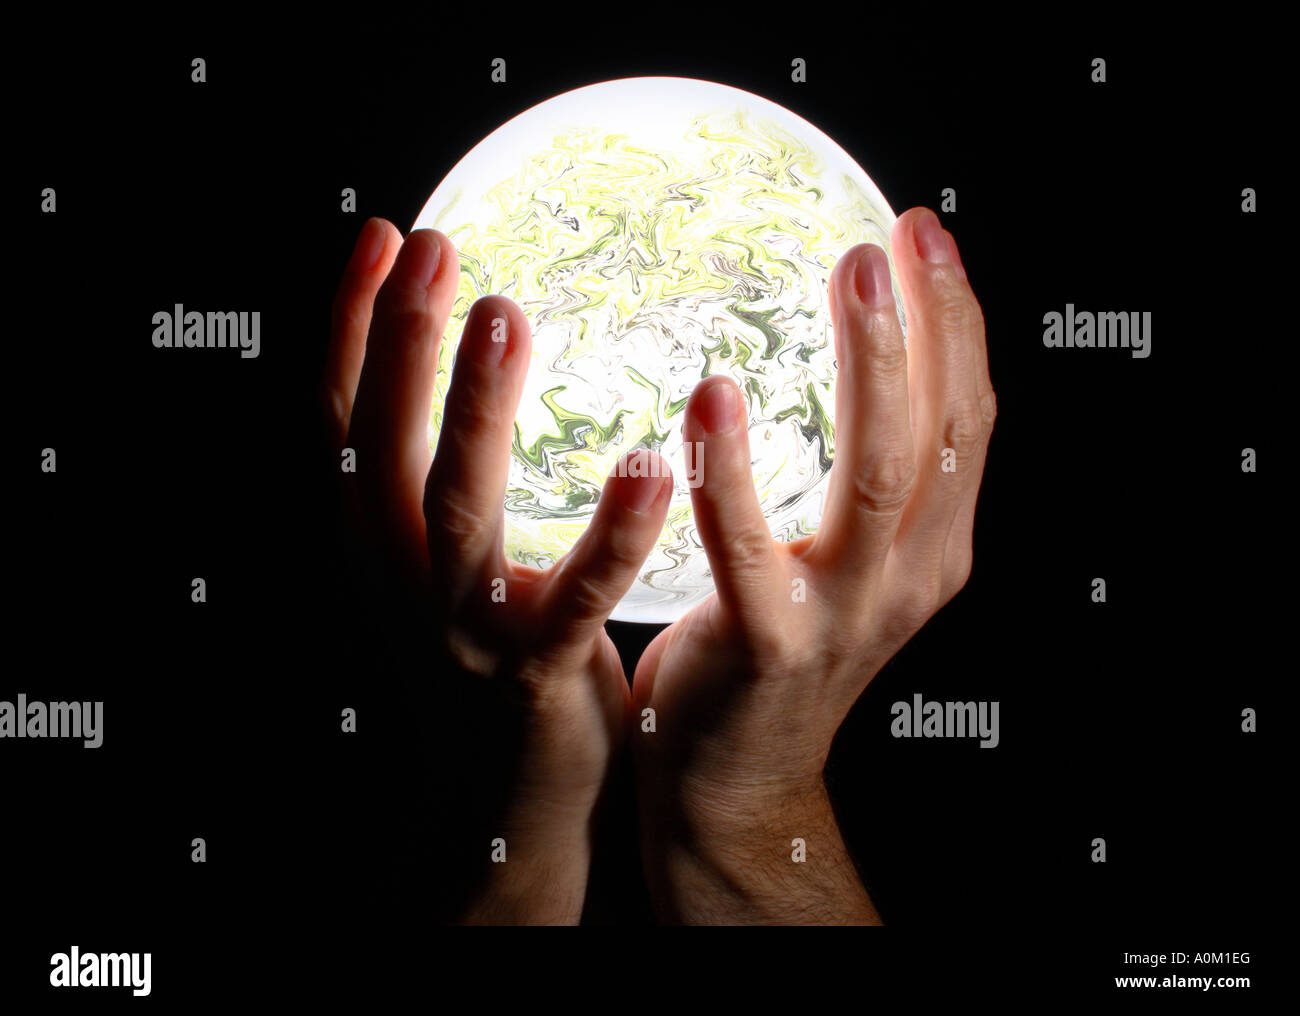 Holding a crystal ball. - Stock Image